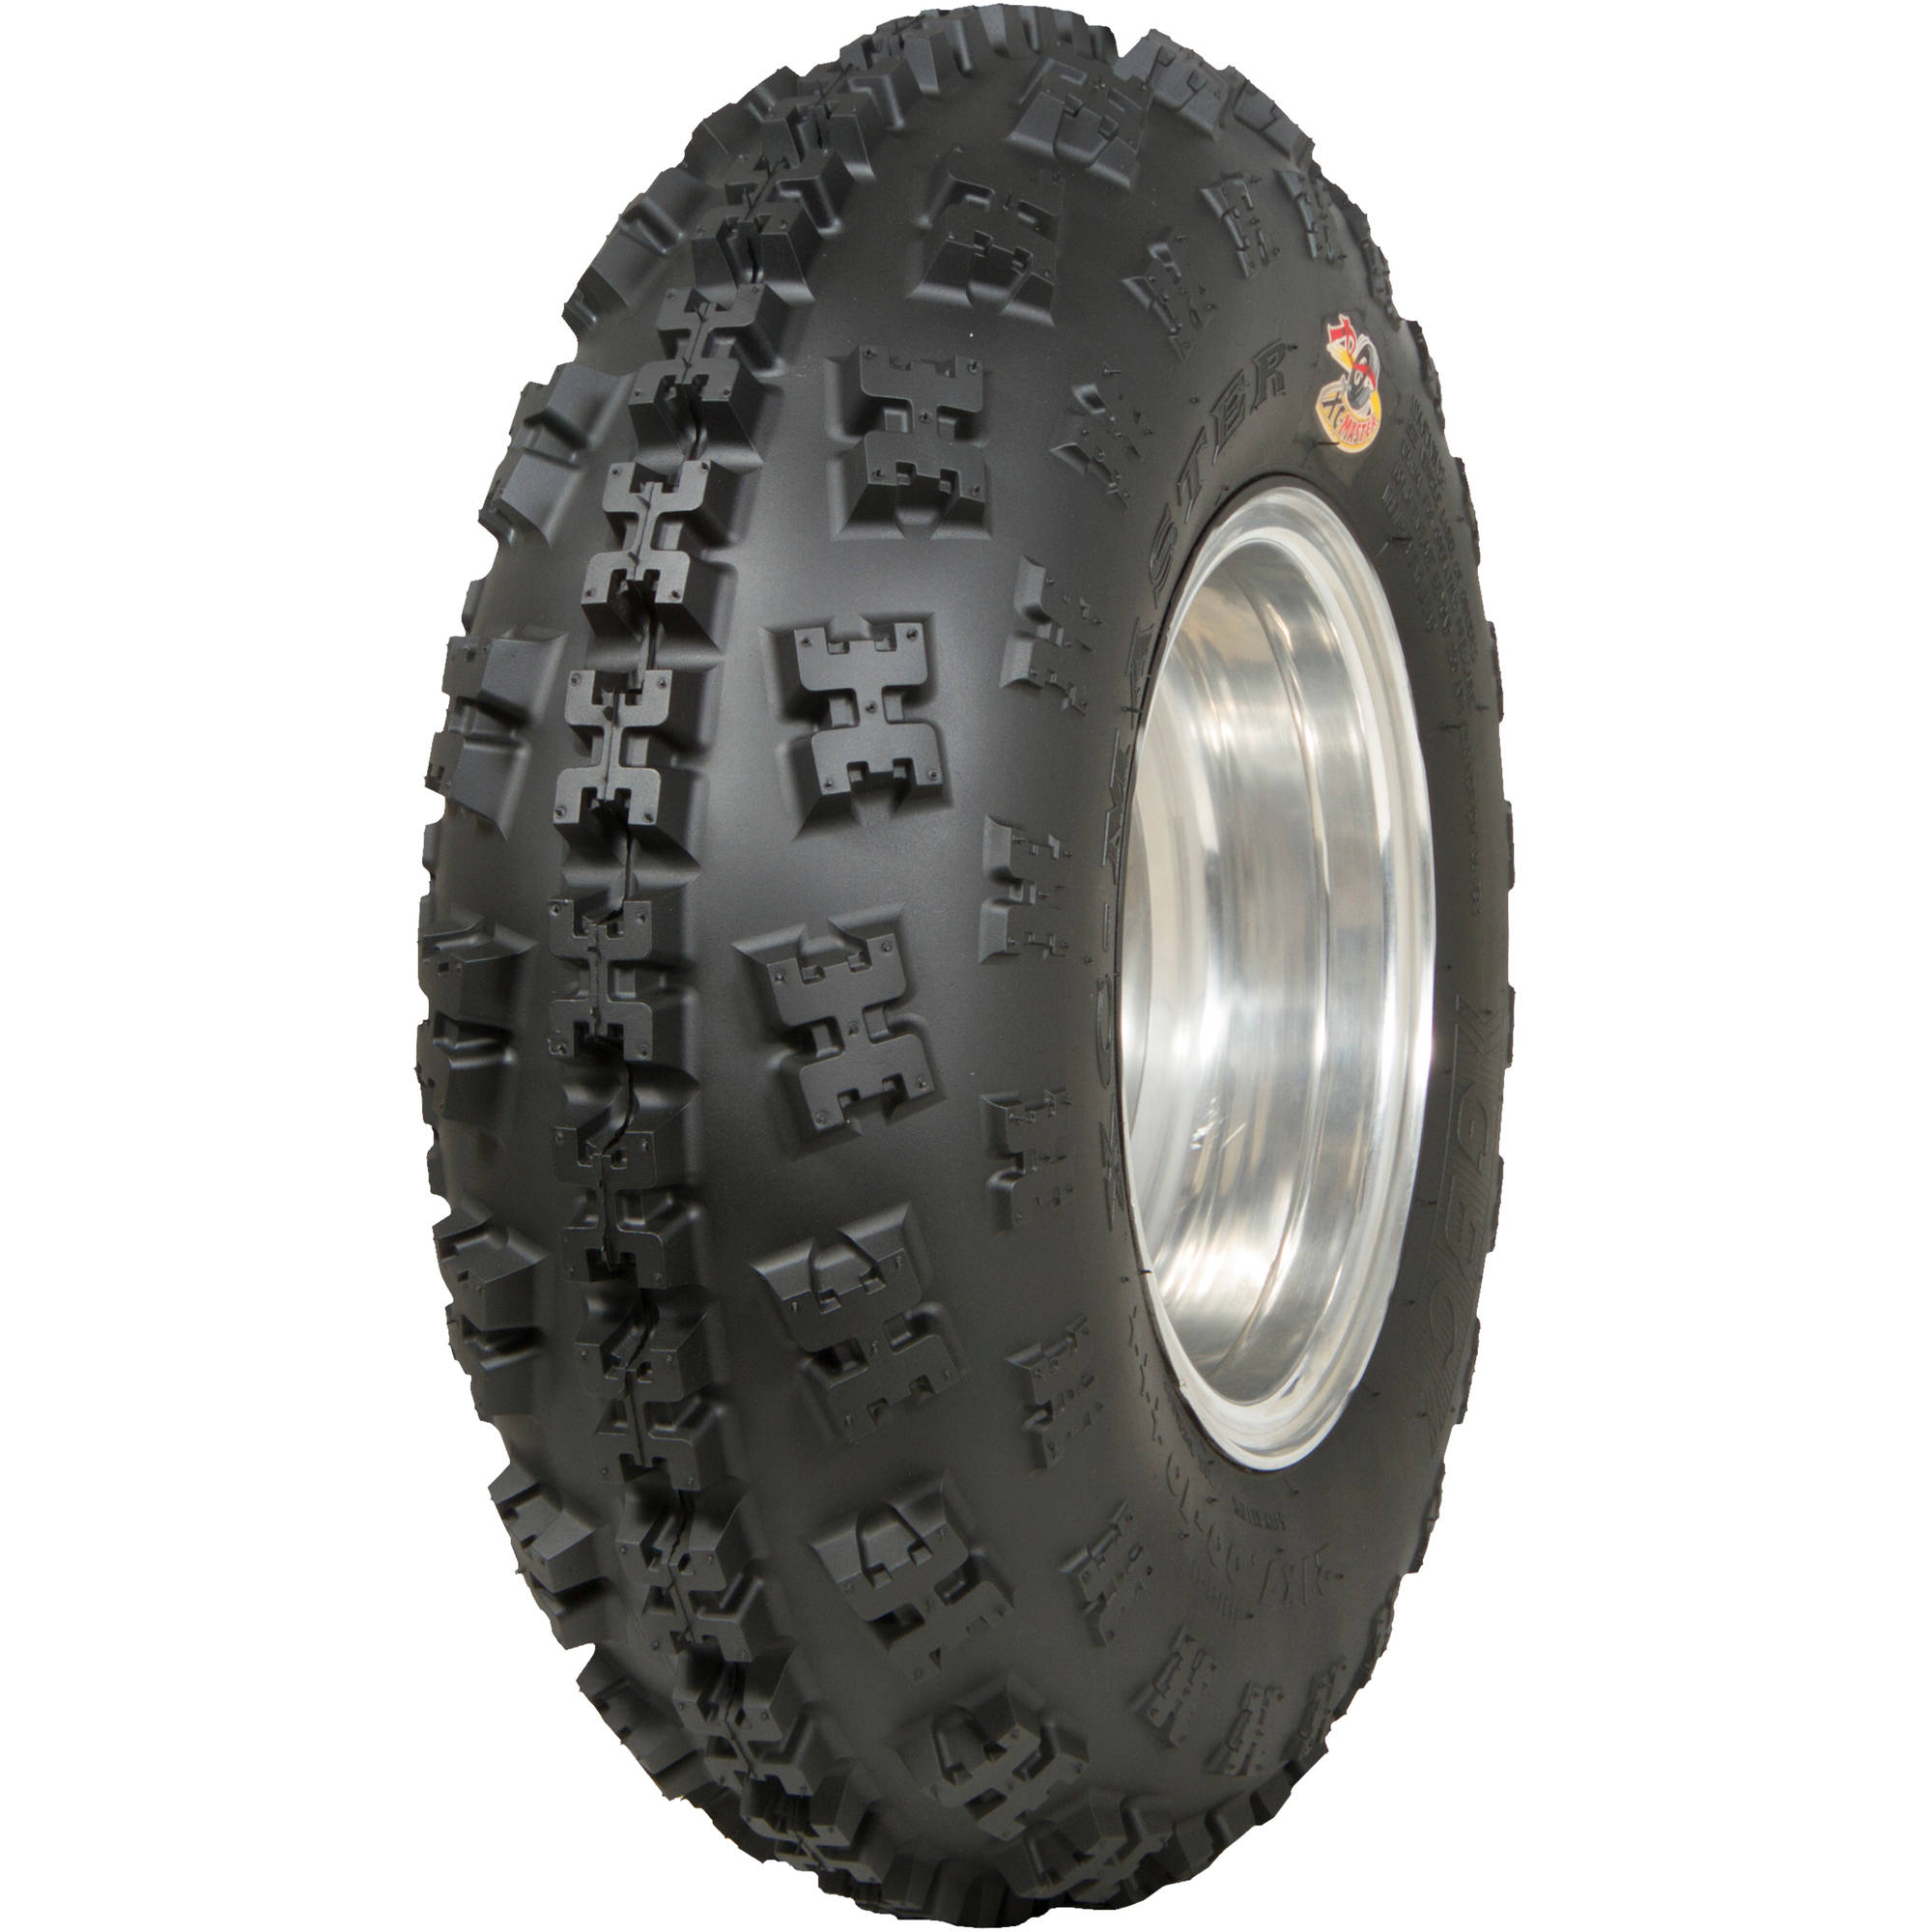 GBC Motorsports XC-Master 22X7.00-10 6 Ply ATV Front Tire (Tire Only)